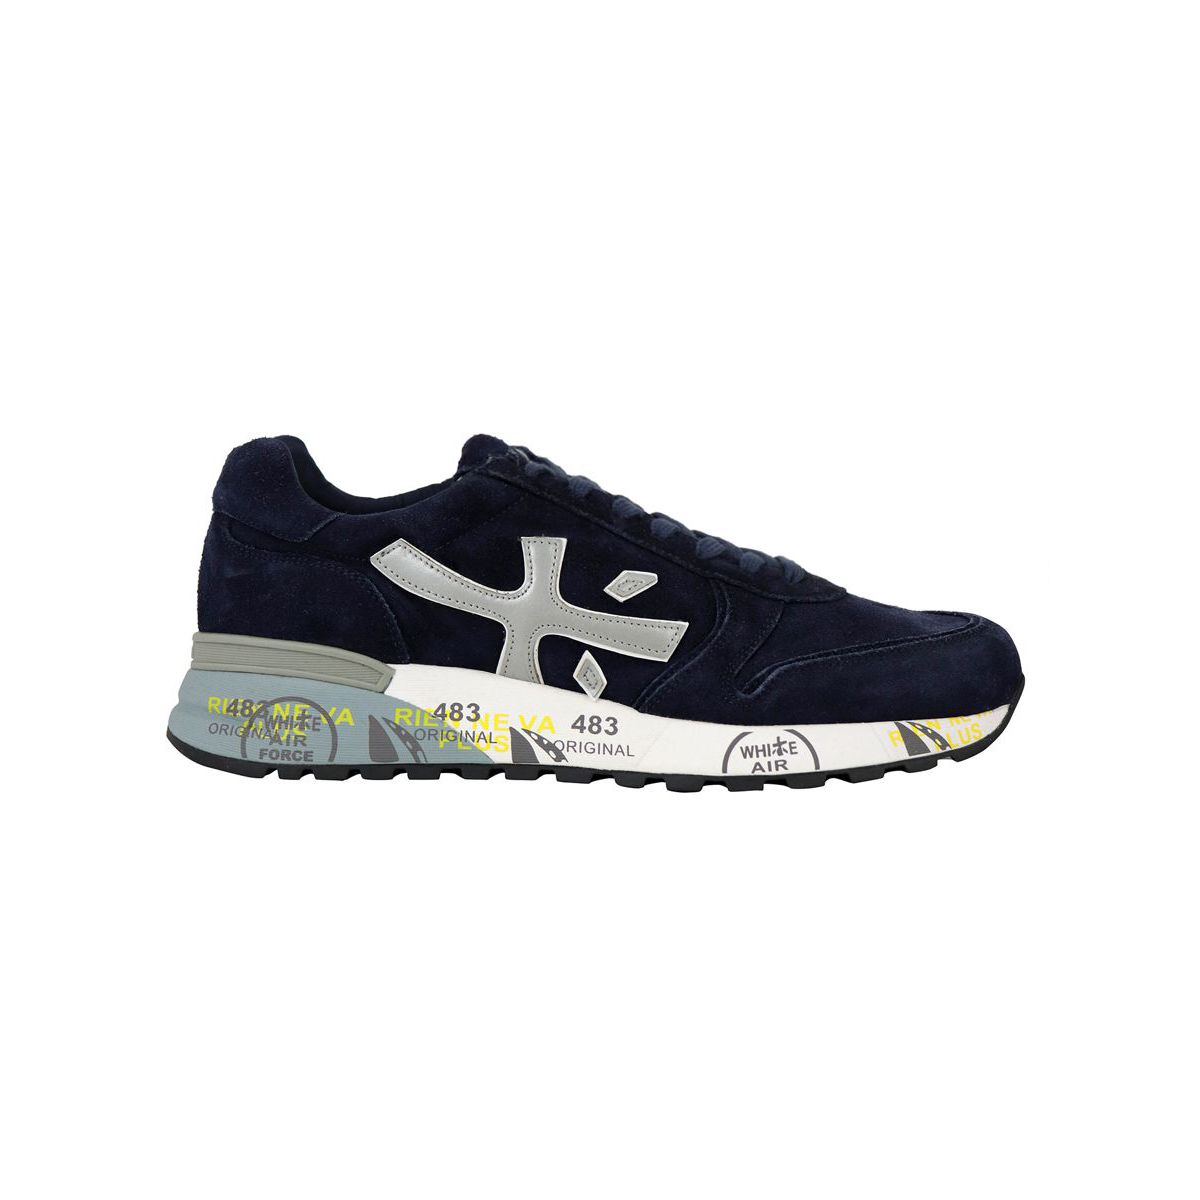 MICK sneakers Blue Premiata